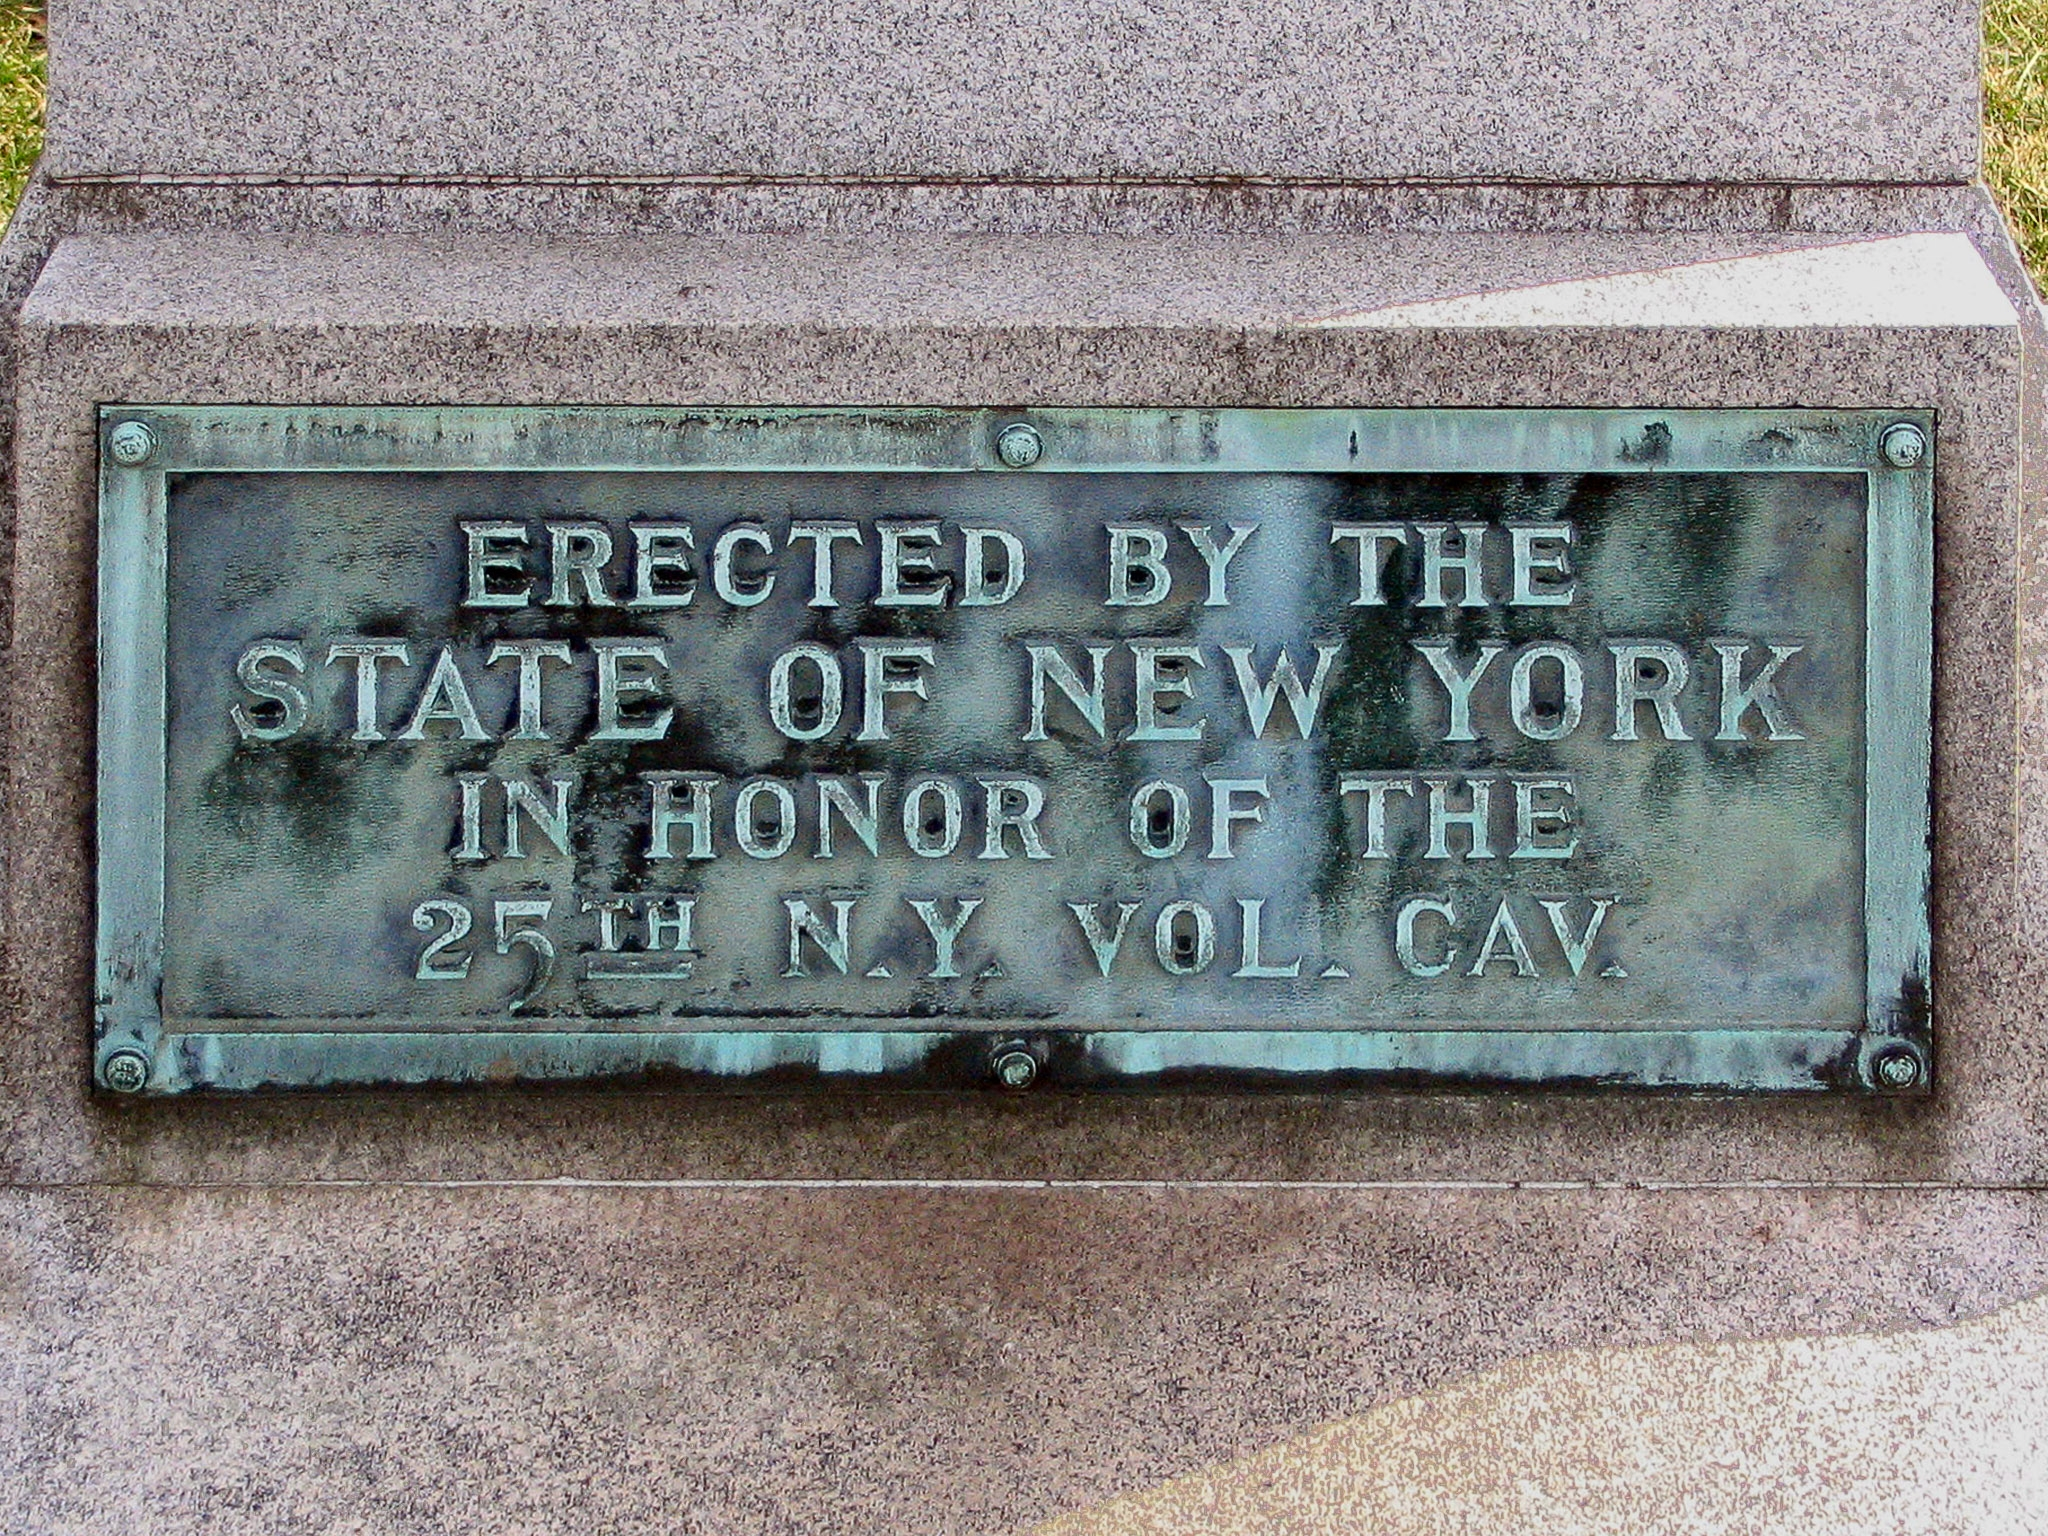 The 25th New York Cavalry Marker